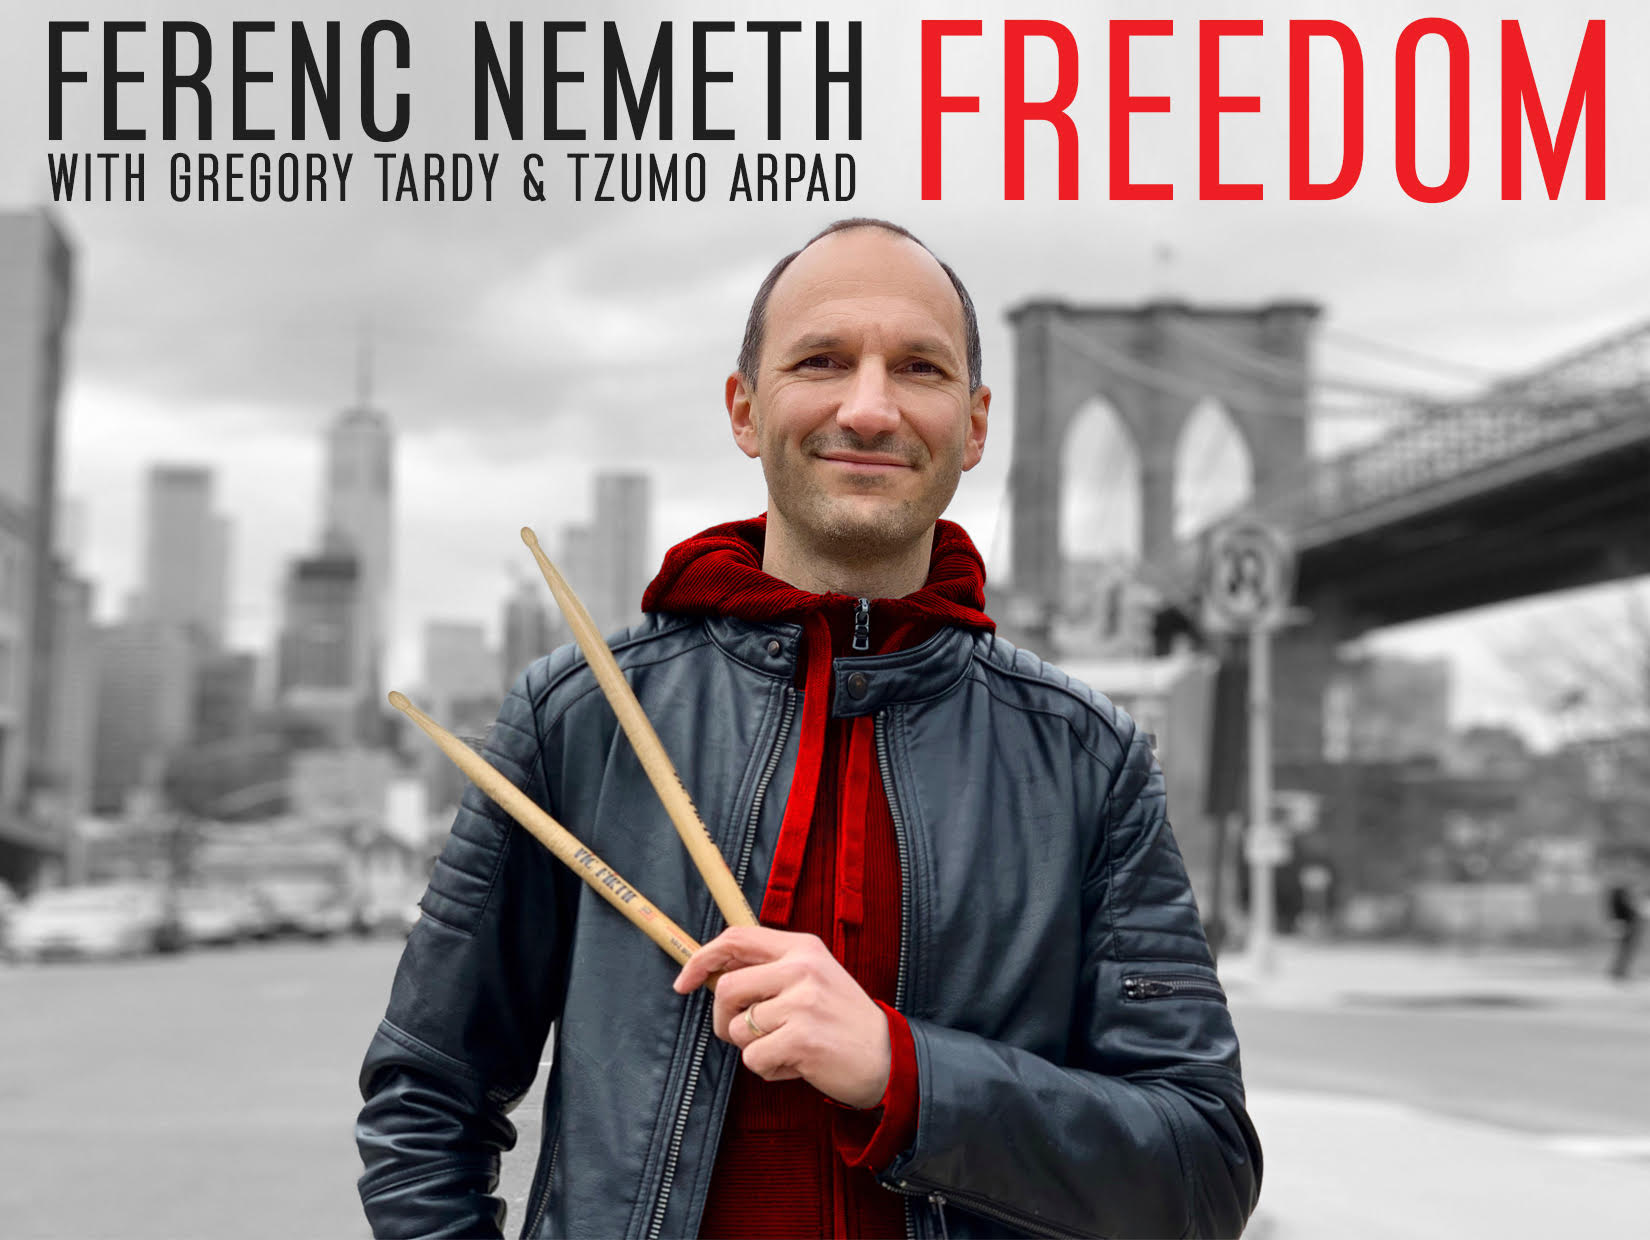 Ferenc Nemeth Delivers 'Freedom' With New Album